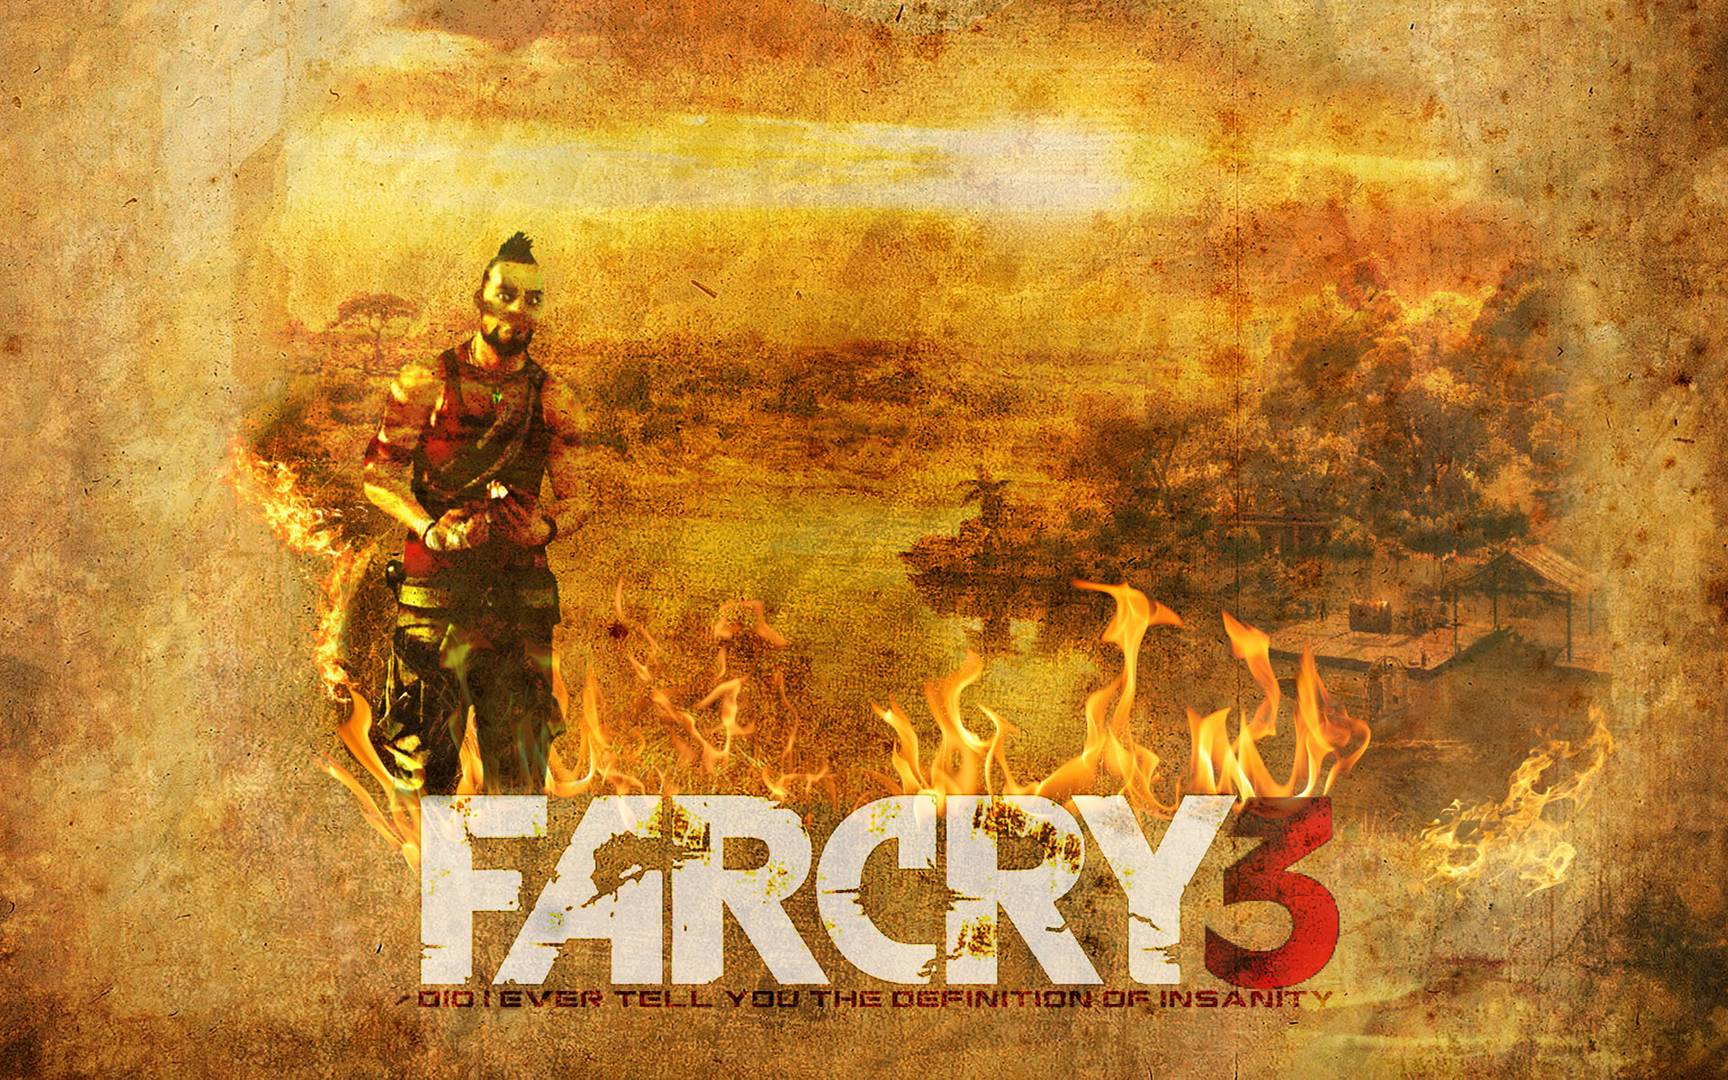 far cry 3 wallpapers in 1080p hd « video game news, reviews